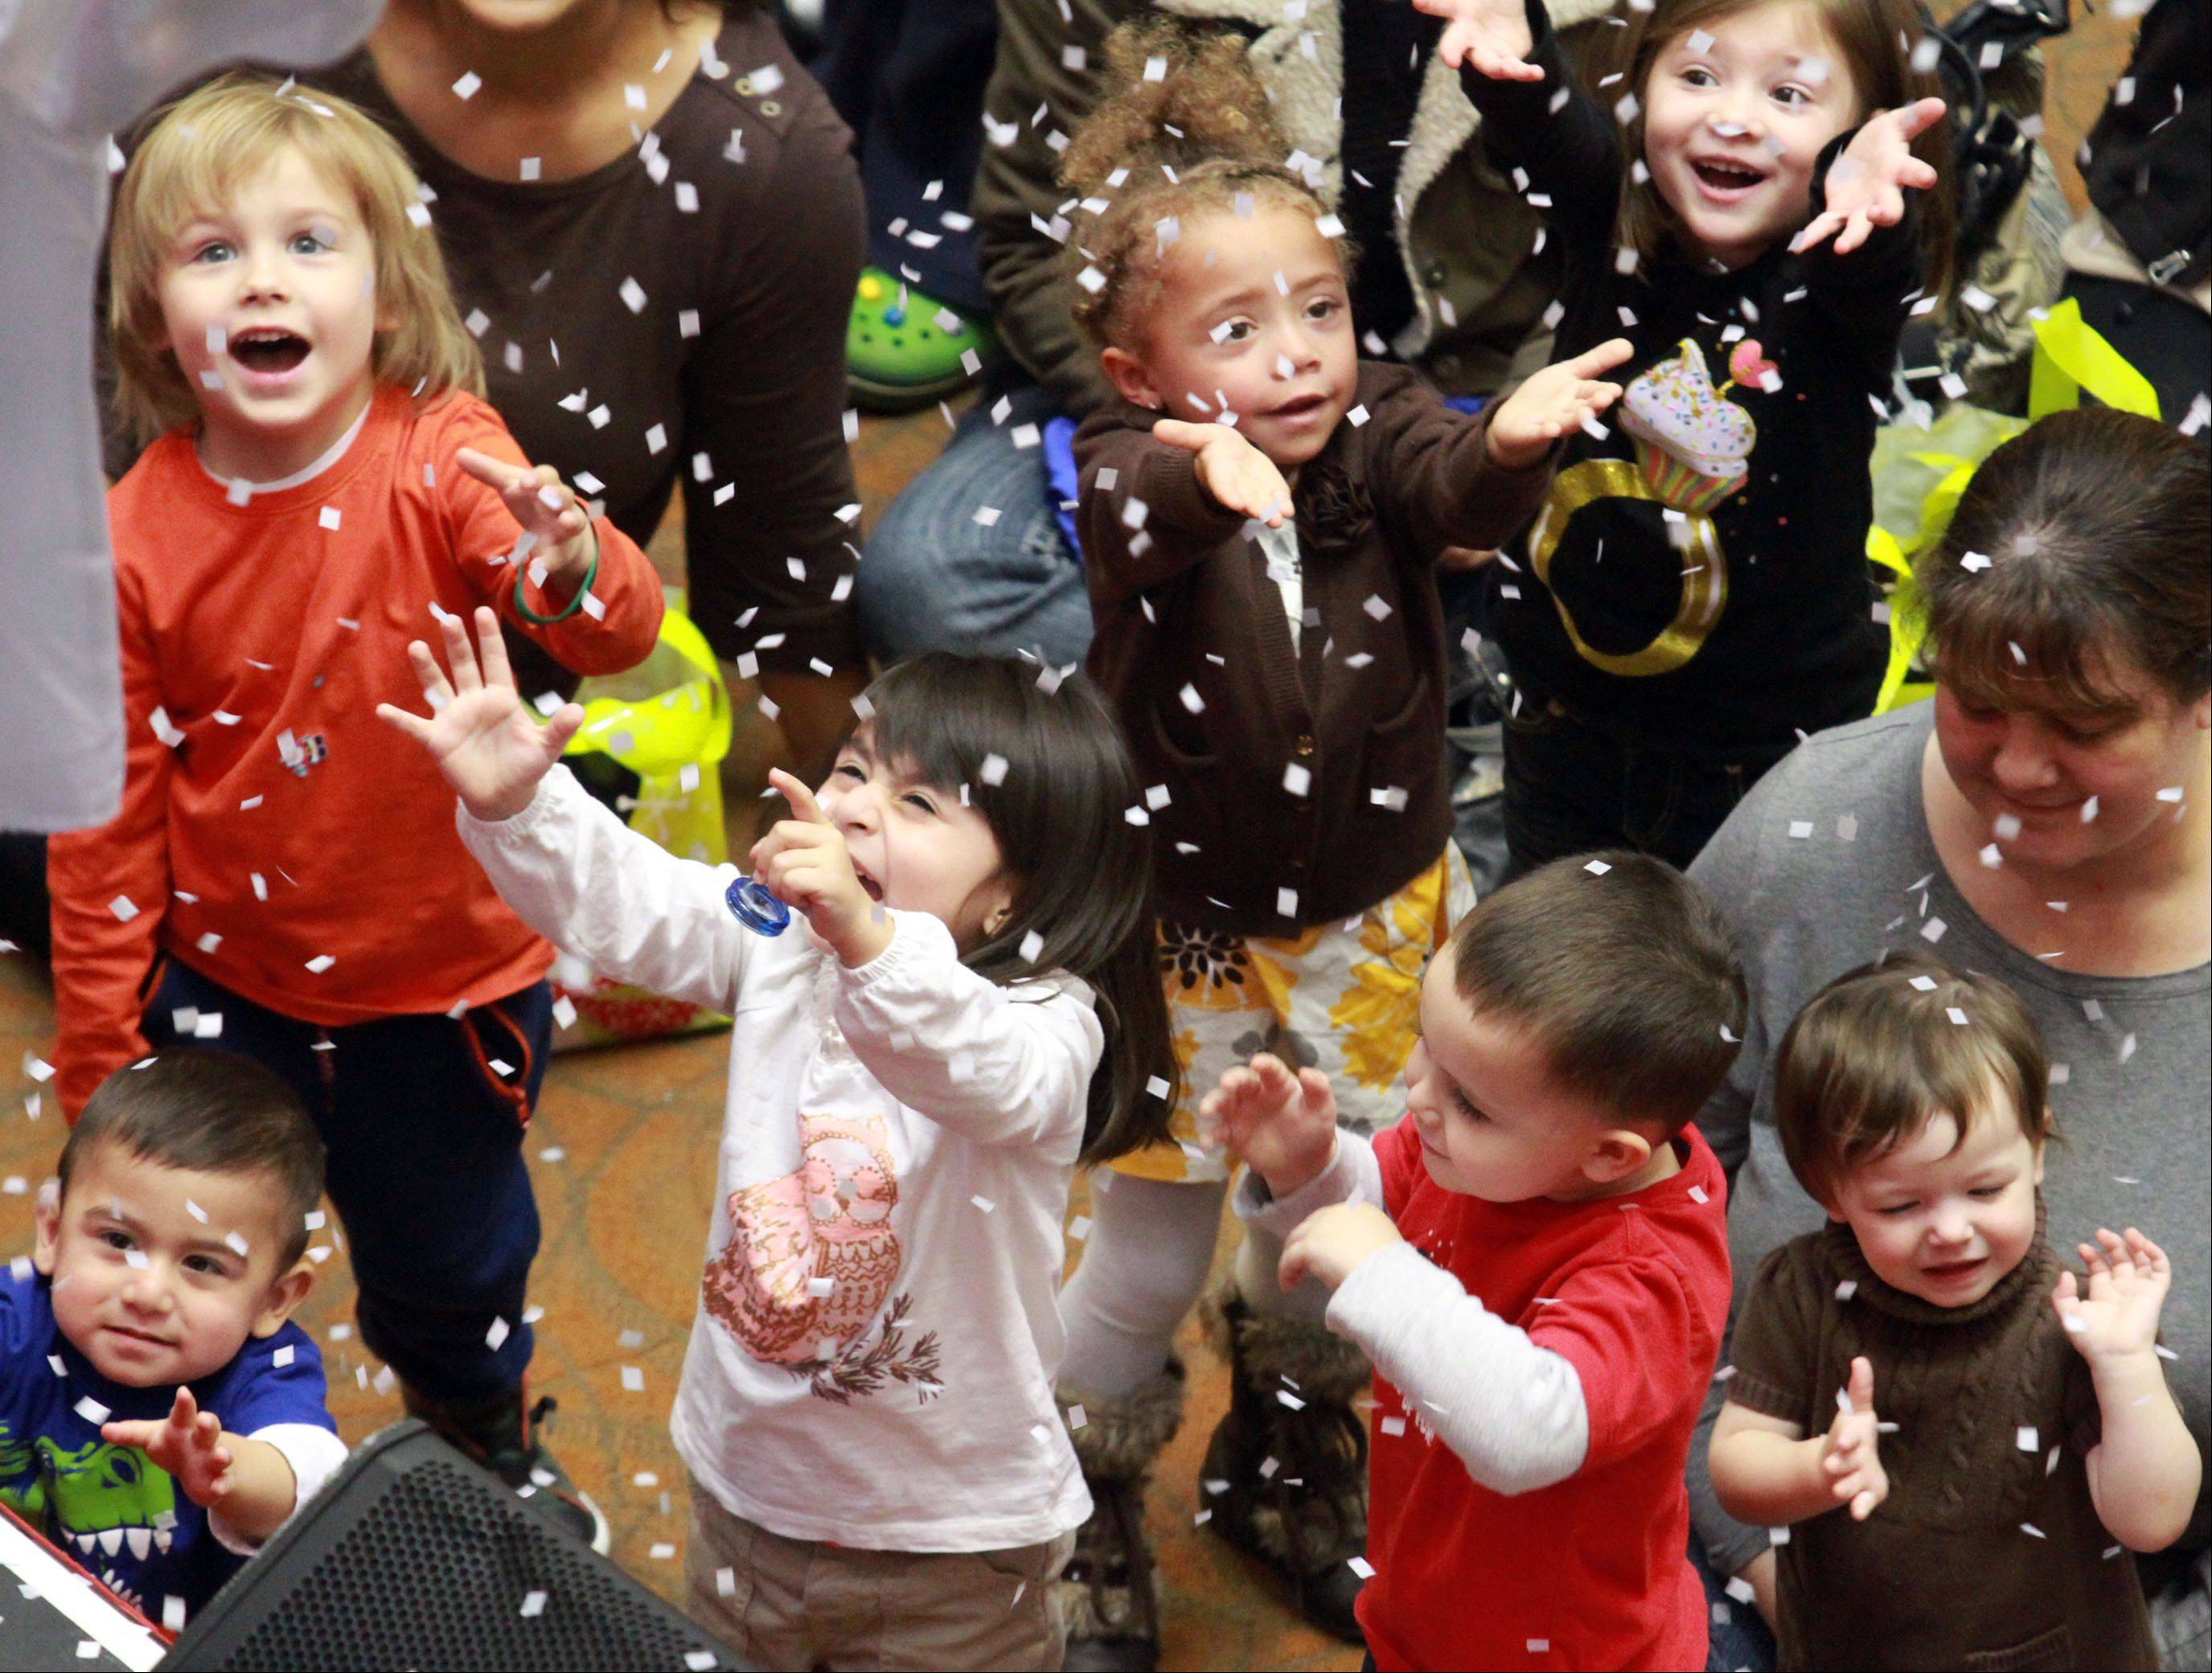 Children try to catch simulated snowflakes during a magic show at the start of the Santa Claus parade at Woodfield Mall in Schaumburg on Thursday.